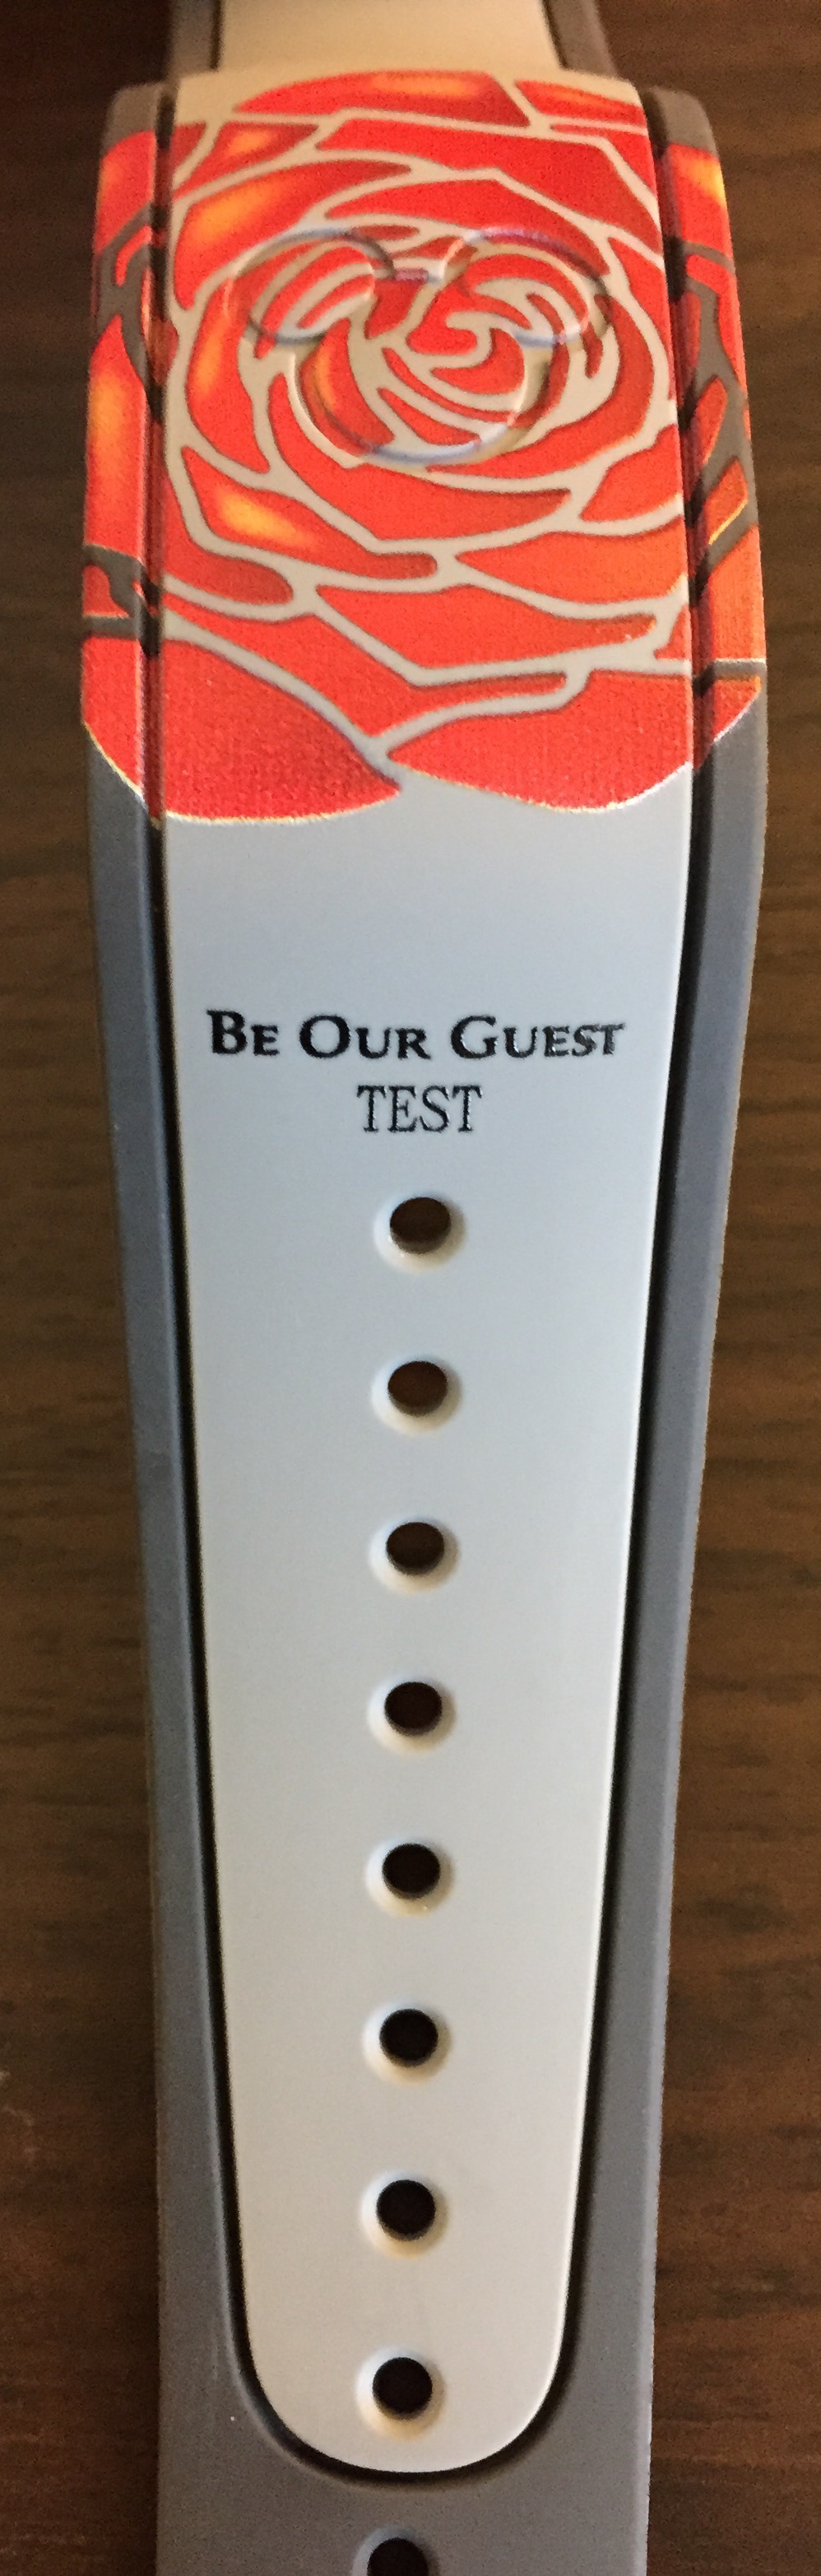 be_our_guest_1